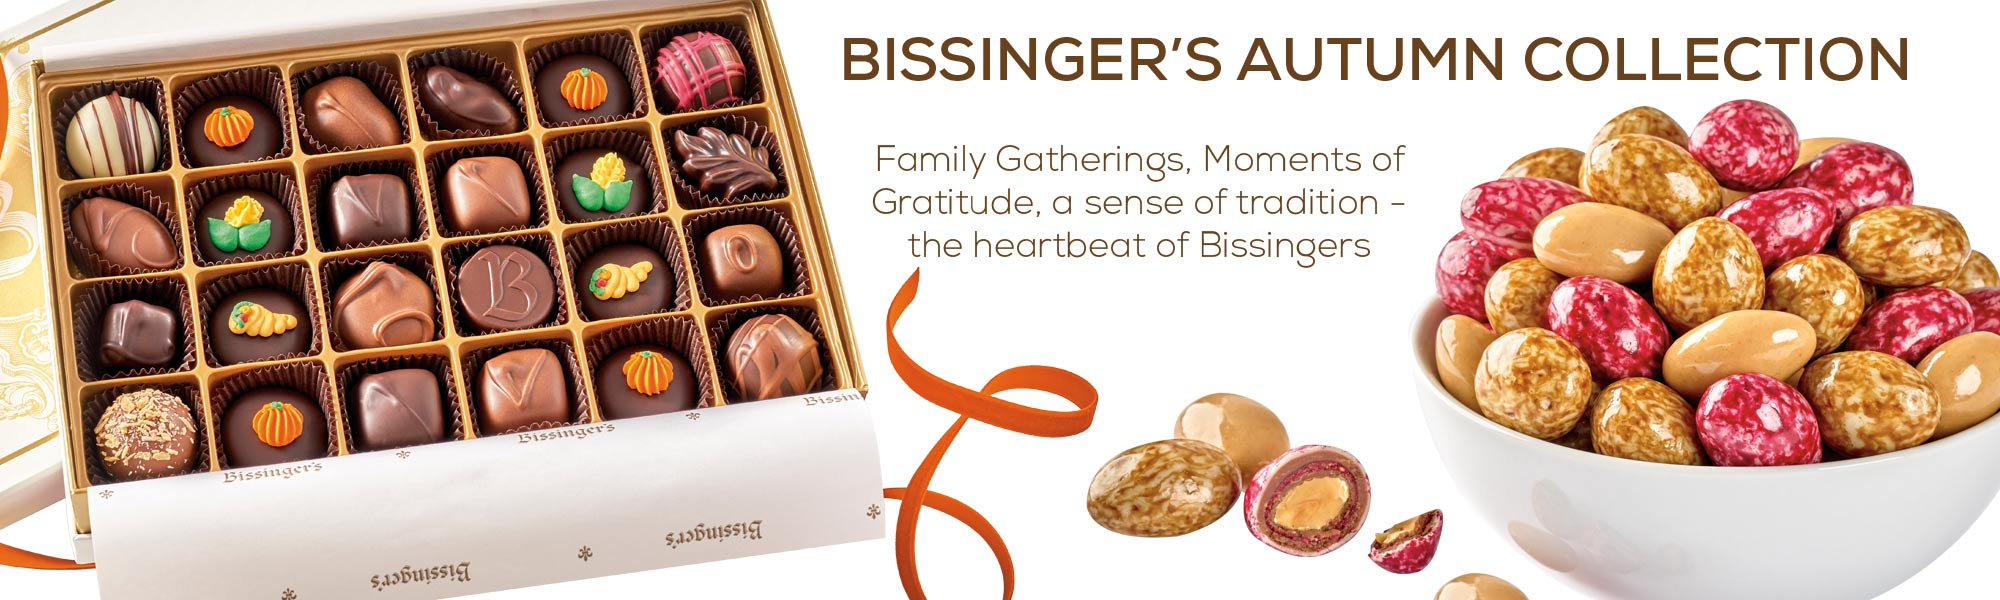 Bissinger's Autumn Collection